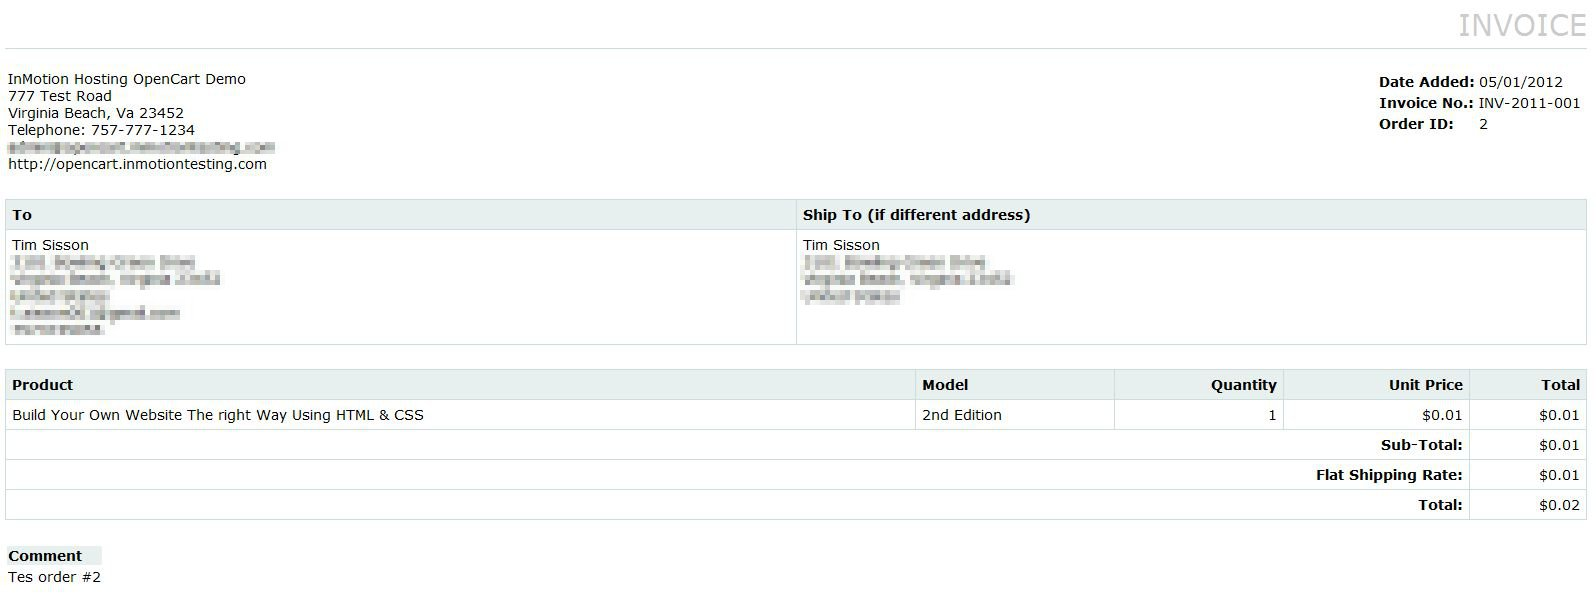 Printing Order Invoices in OpenCart InMotion Hosting